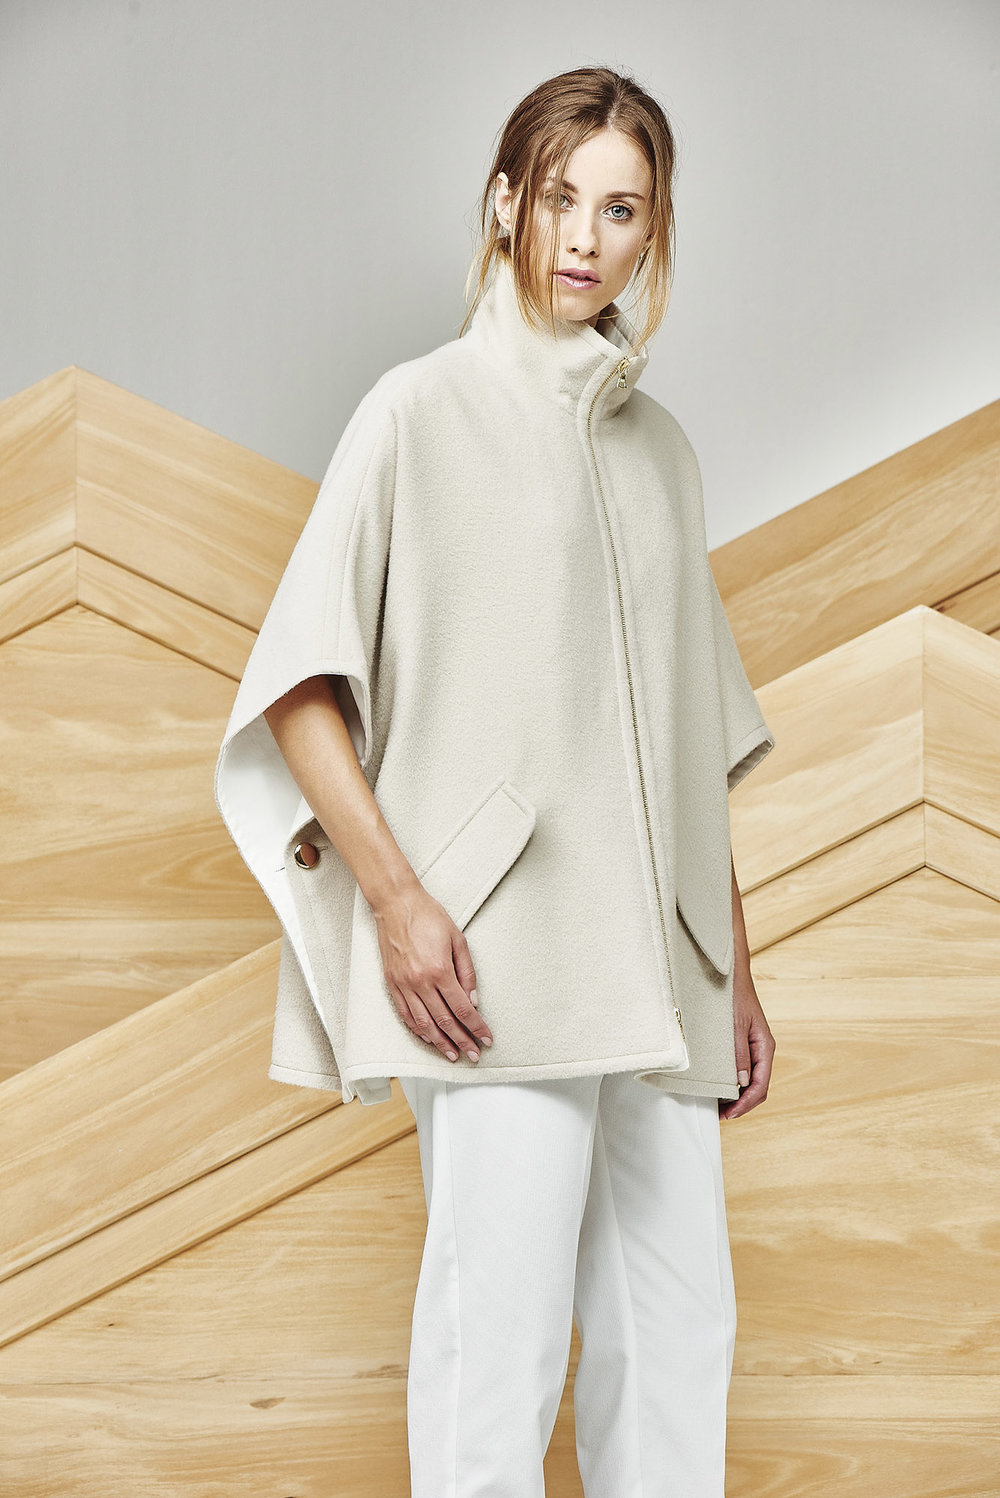 PONCHO MARGIE REVERSIBLE AT-415   Colors:  ecru , camel, black, herringbone camel/white  Sizes: S, M, L